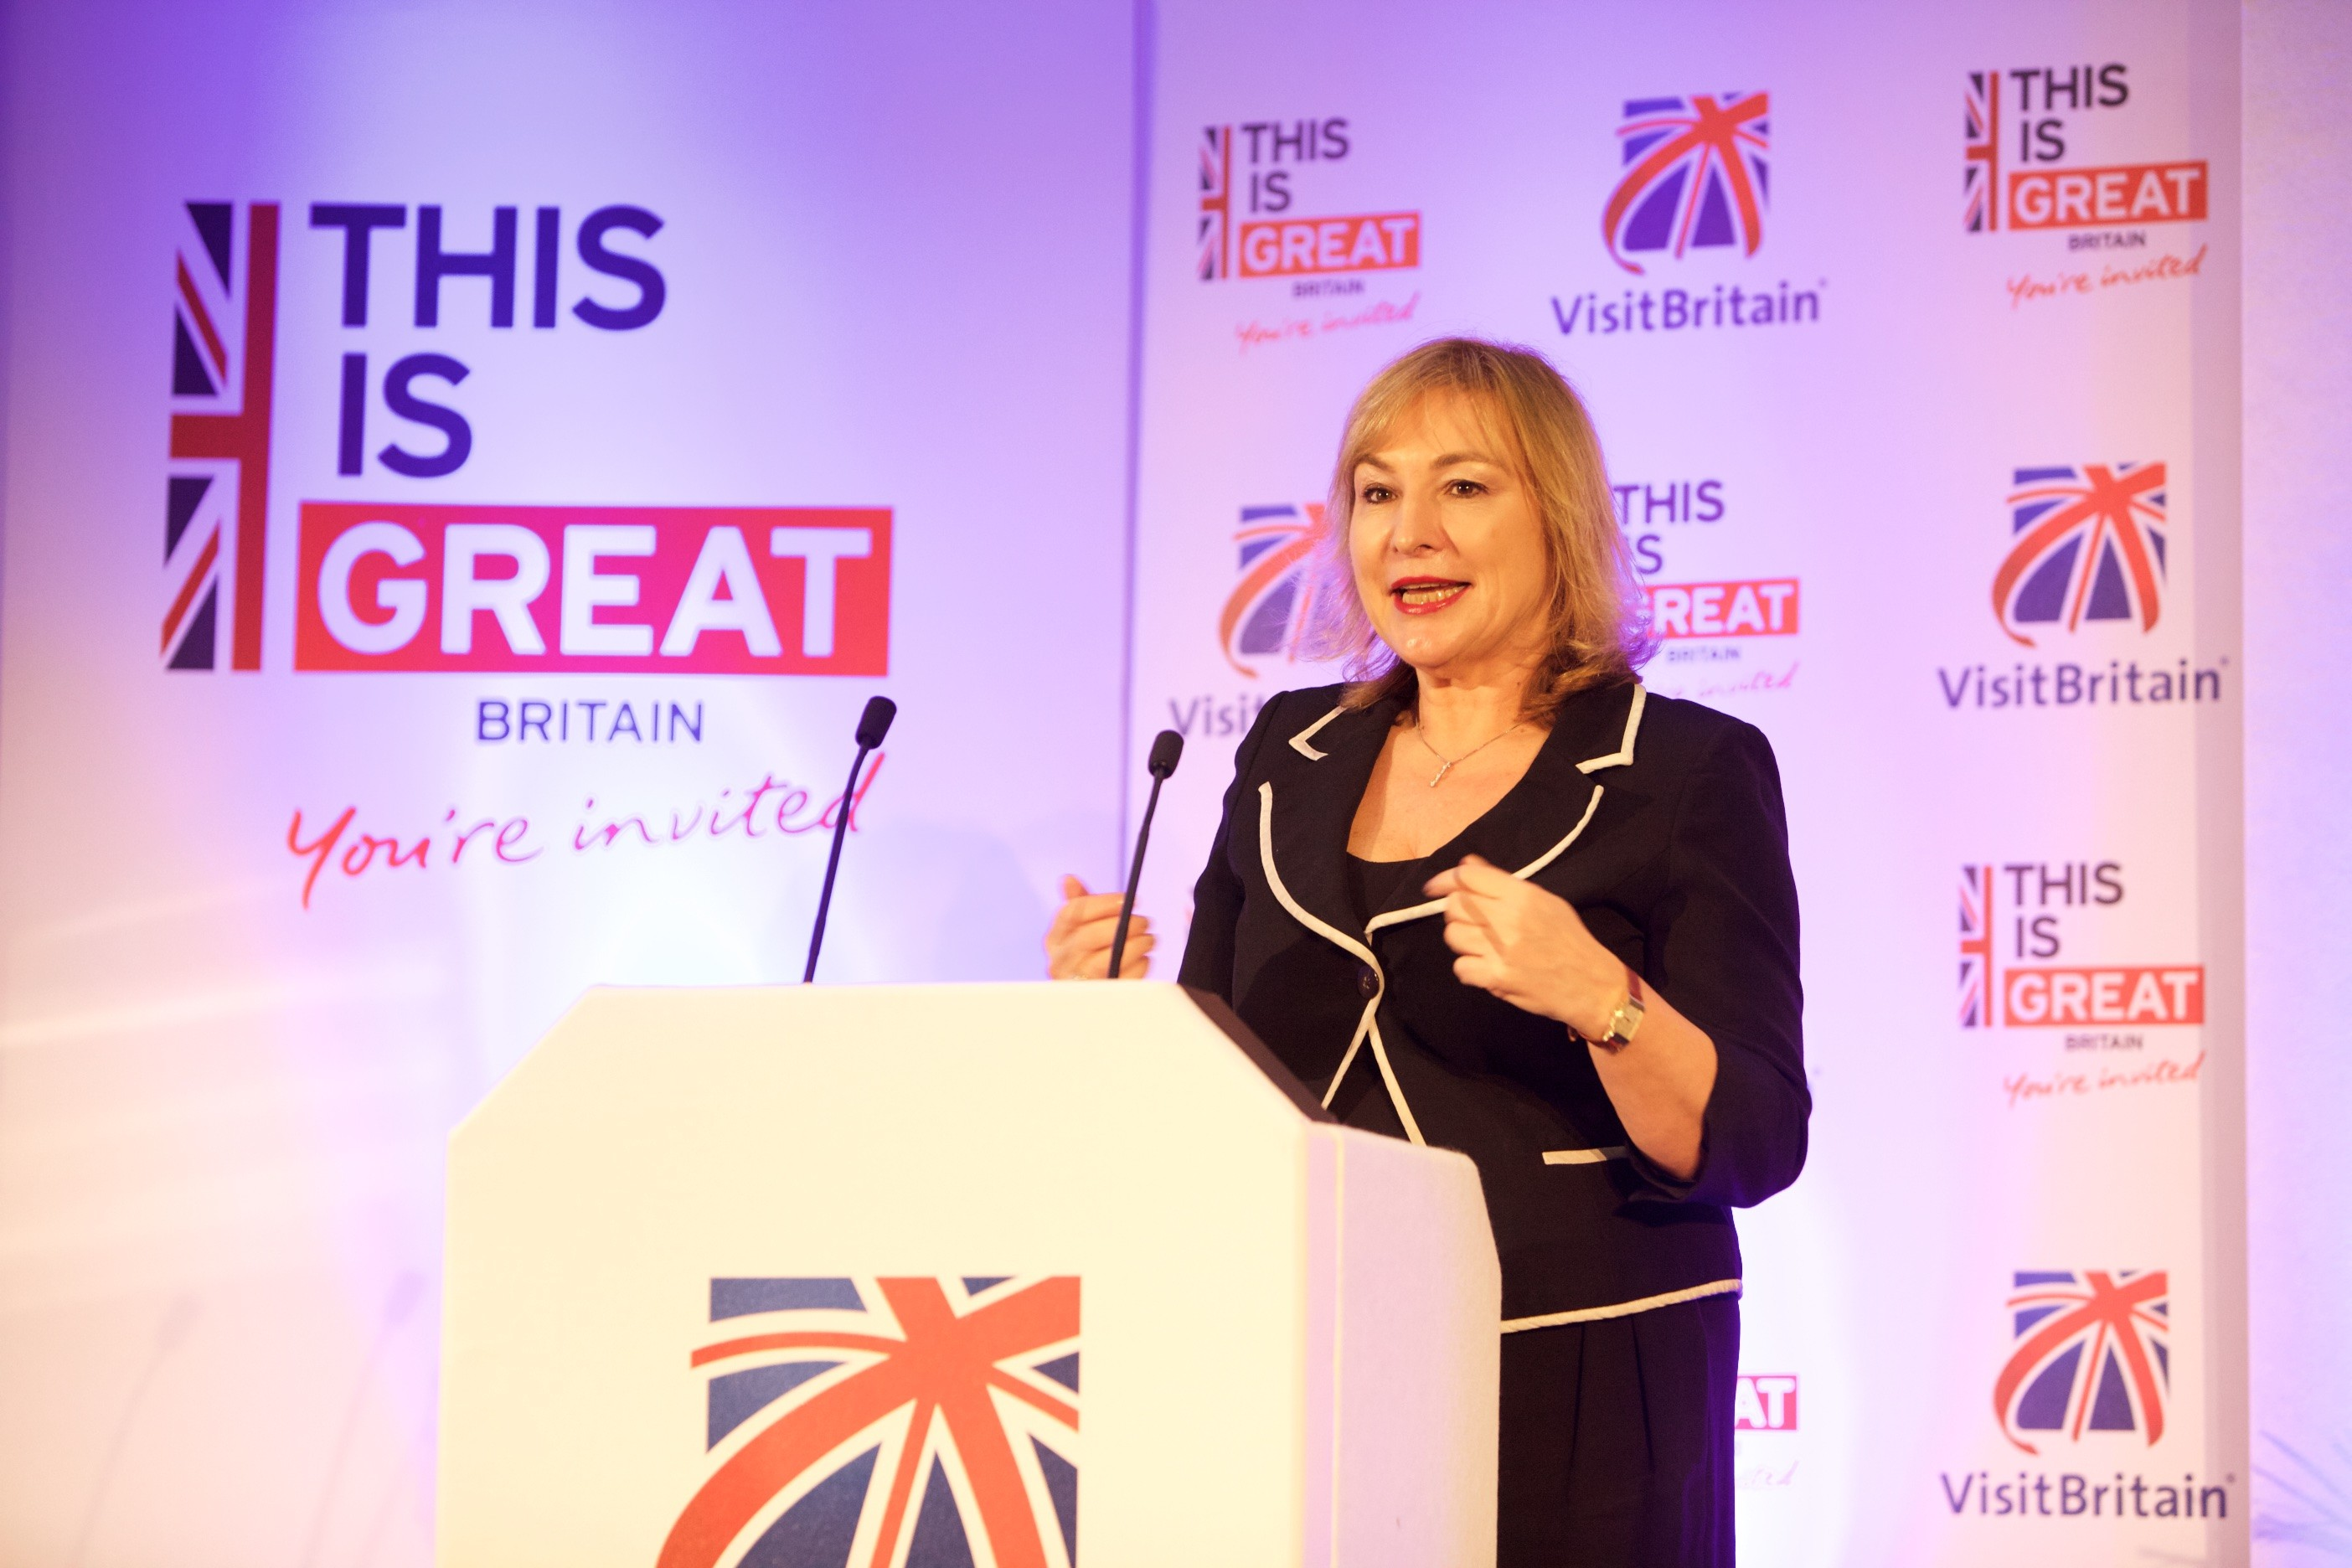 Strategy & Communications Director Patricia Yates delivering a speech in front of a This is GREAT and VisitBritain branded media wall